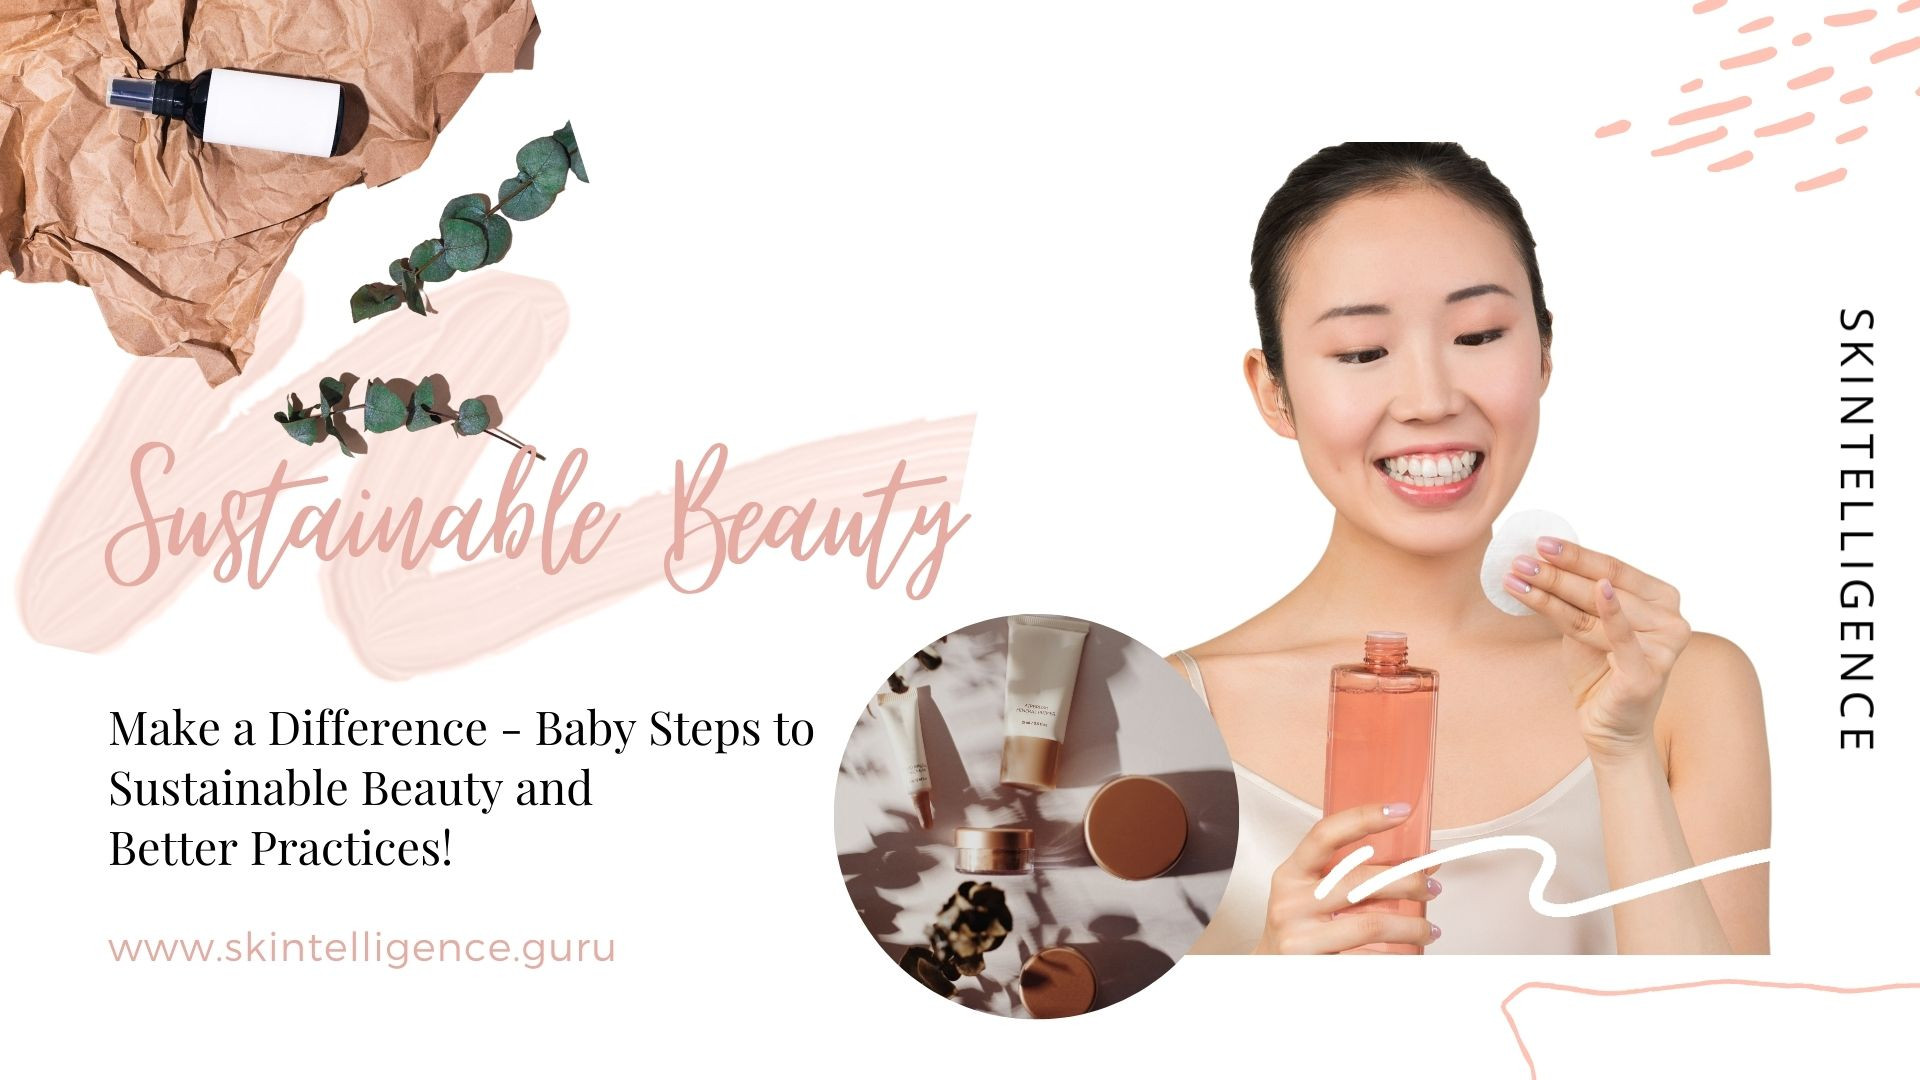 Baby Steps to Sustainable Beauty and Better Practices